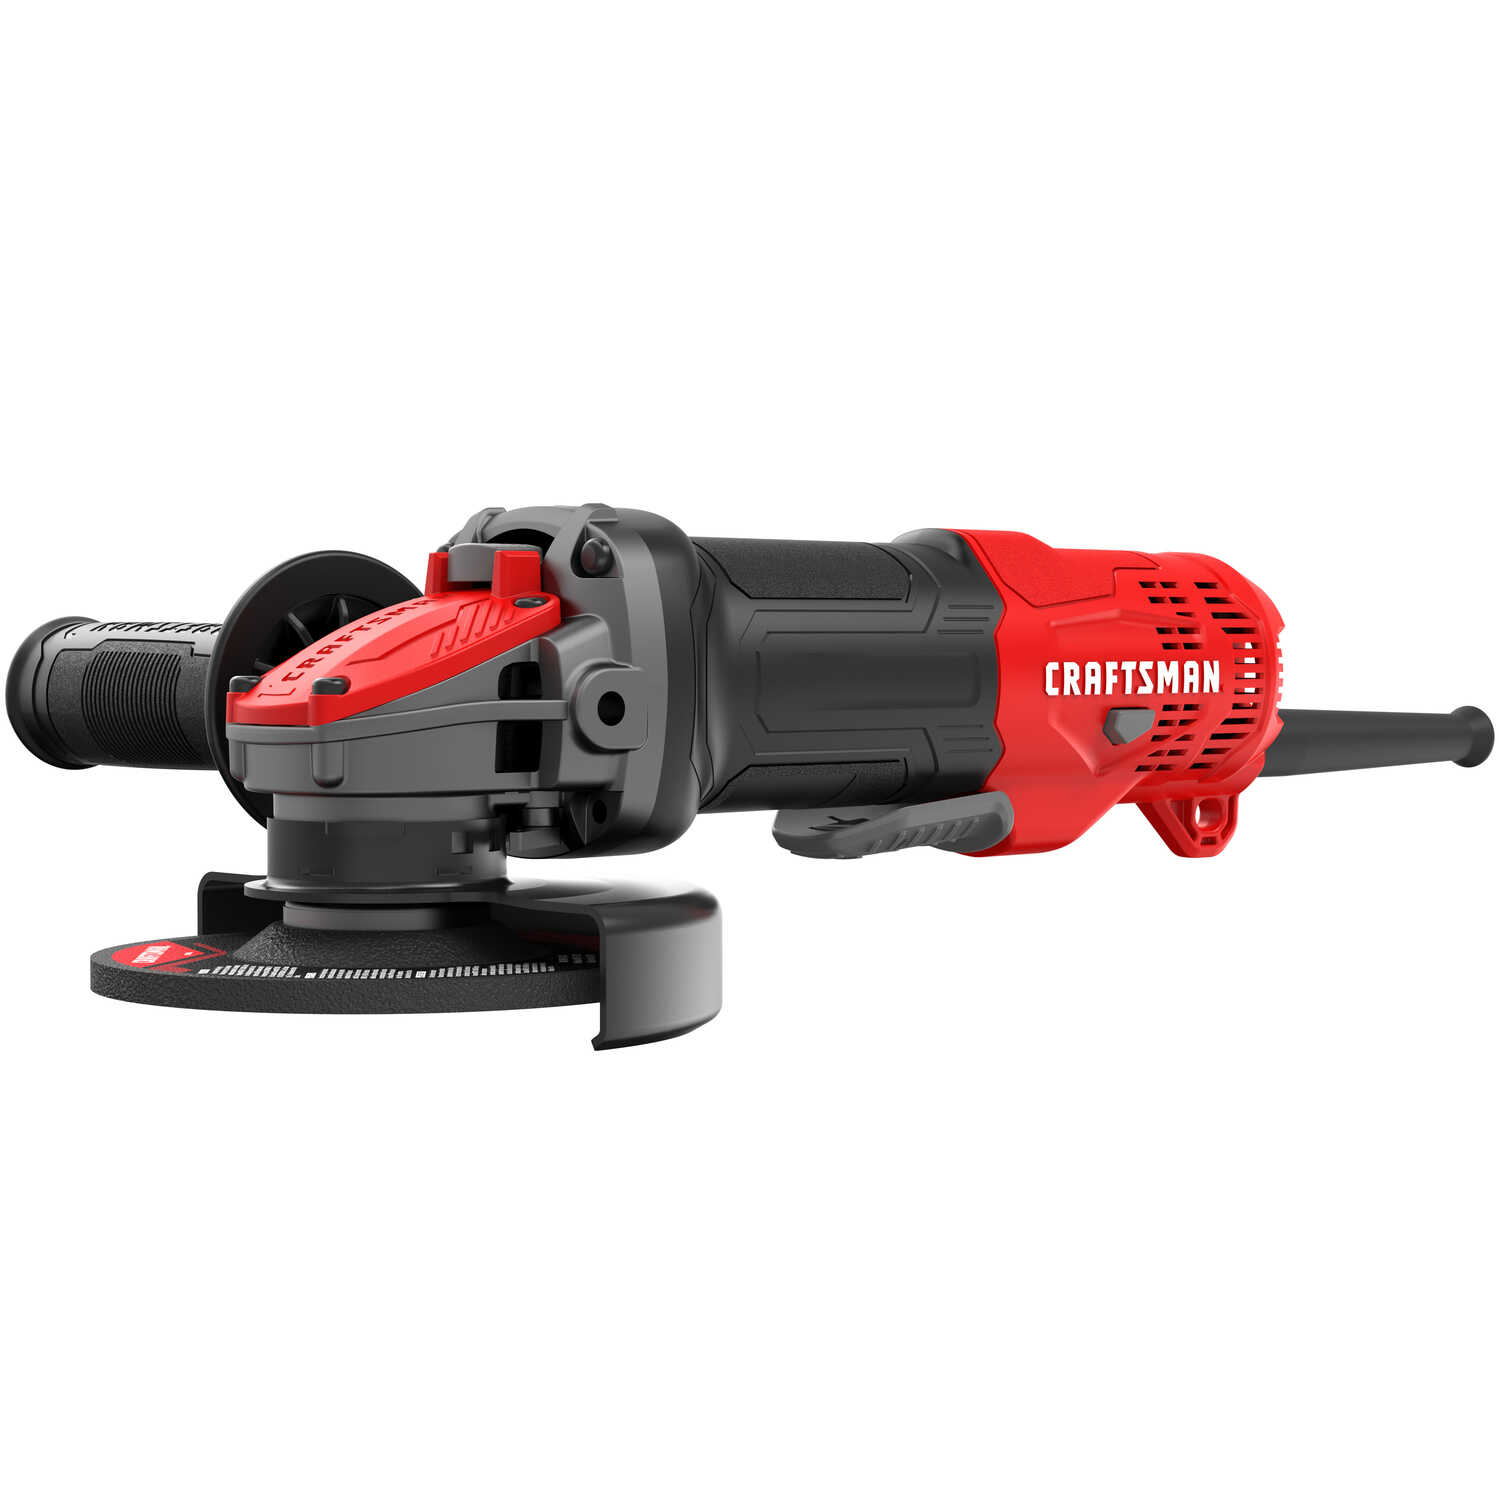 Craftsman  4 in.  Corded  Angle Grinder  12000 rpm Paddle with Lock-On  Red